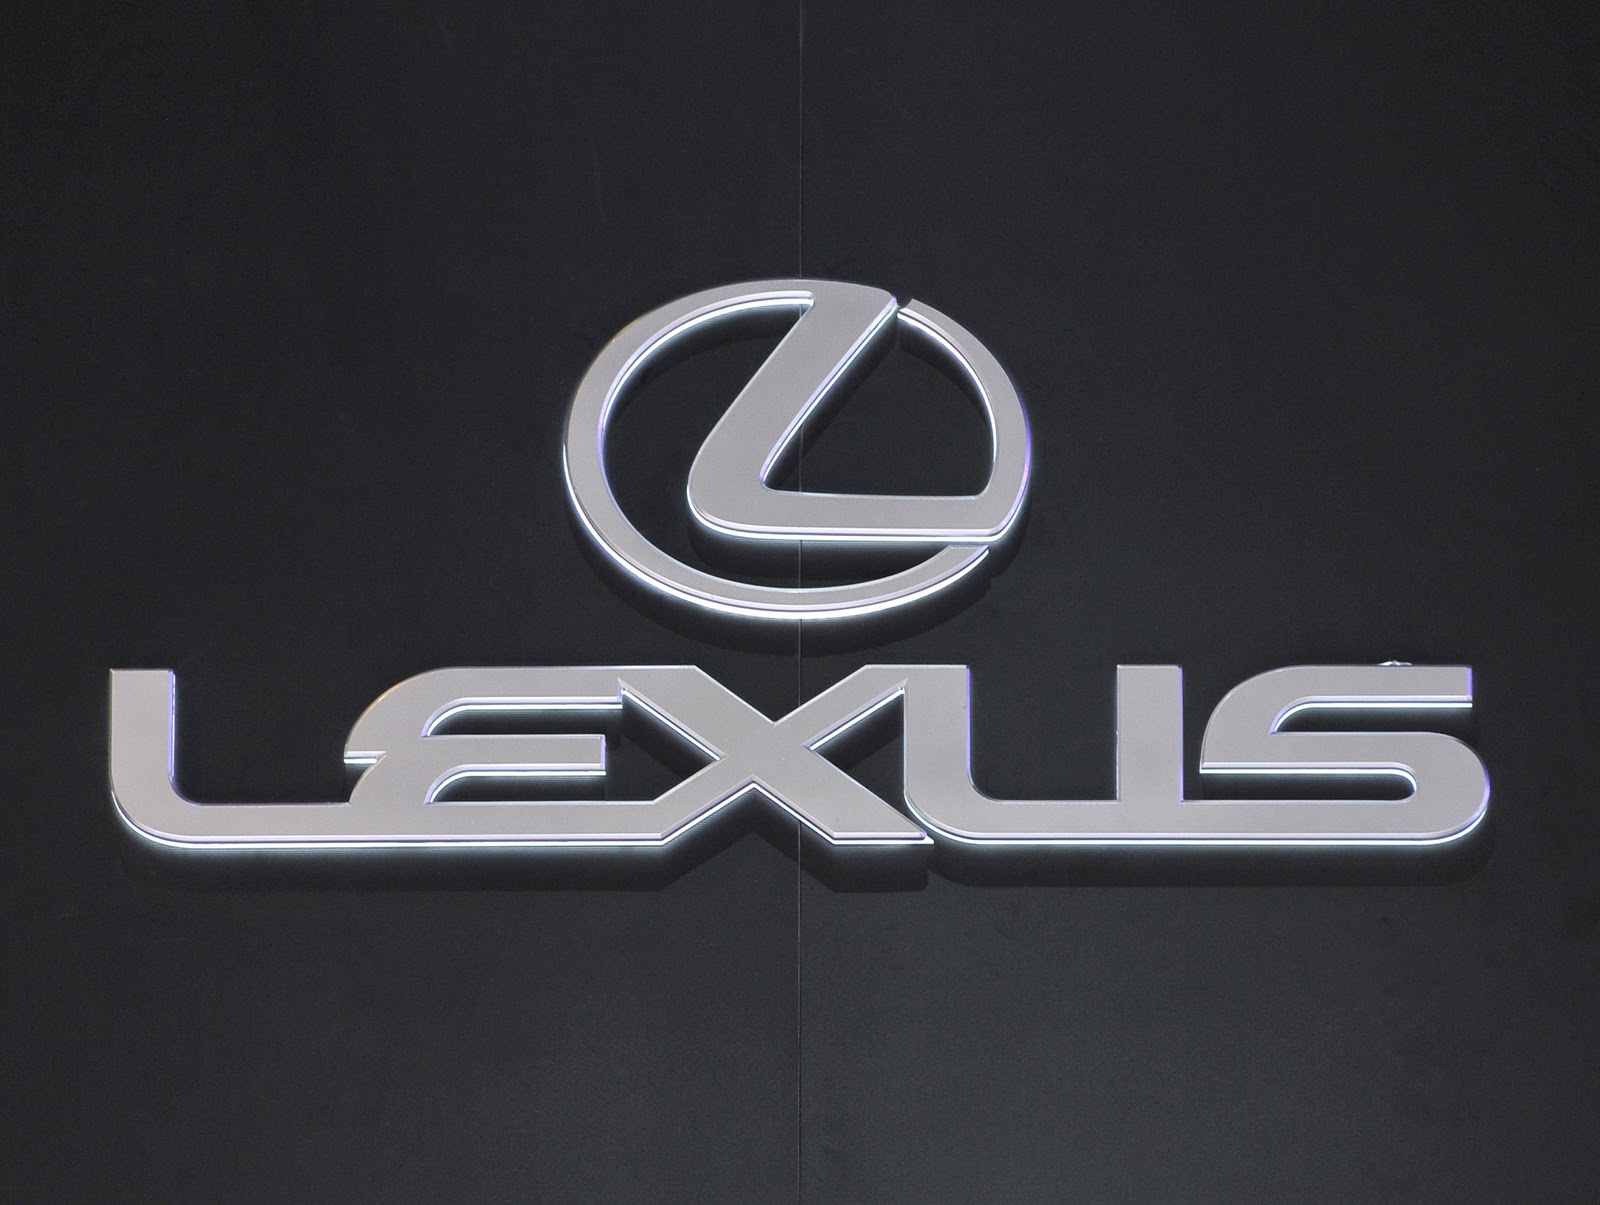 Lexus Logo Lexus Car Symbol Meaning And History Car Brand Names